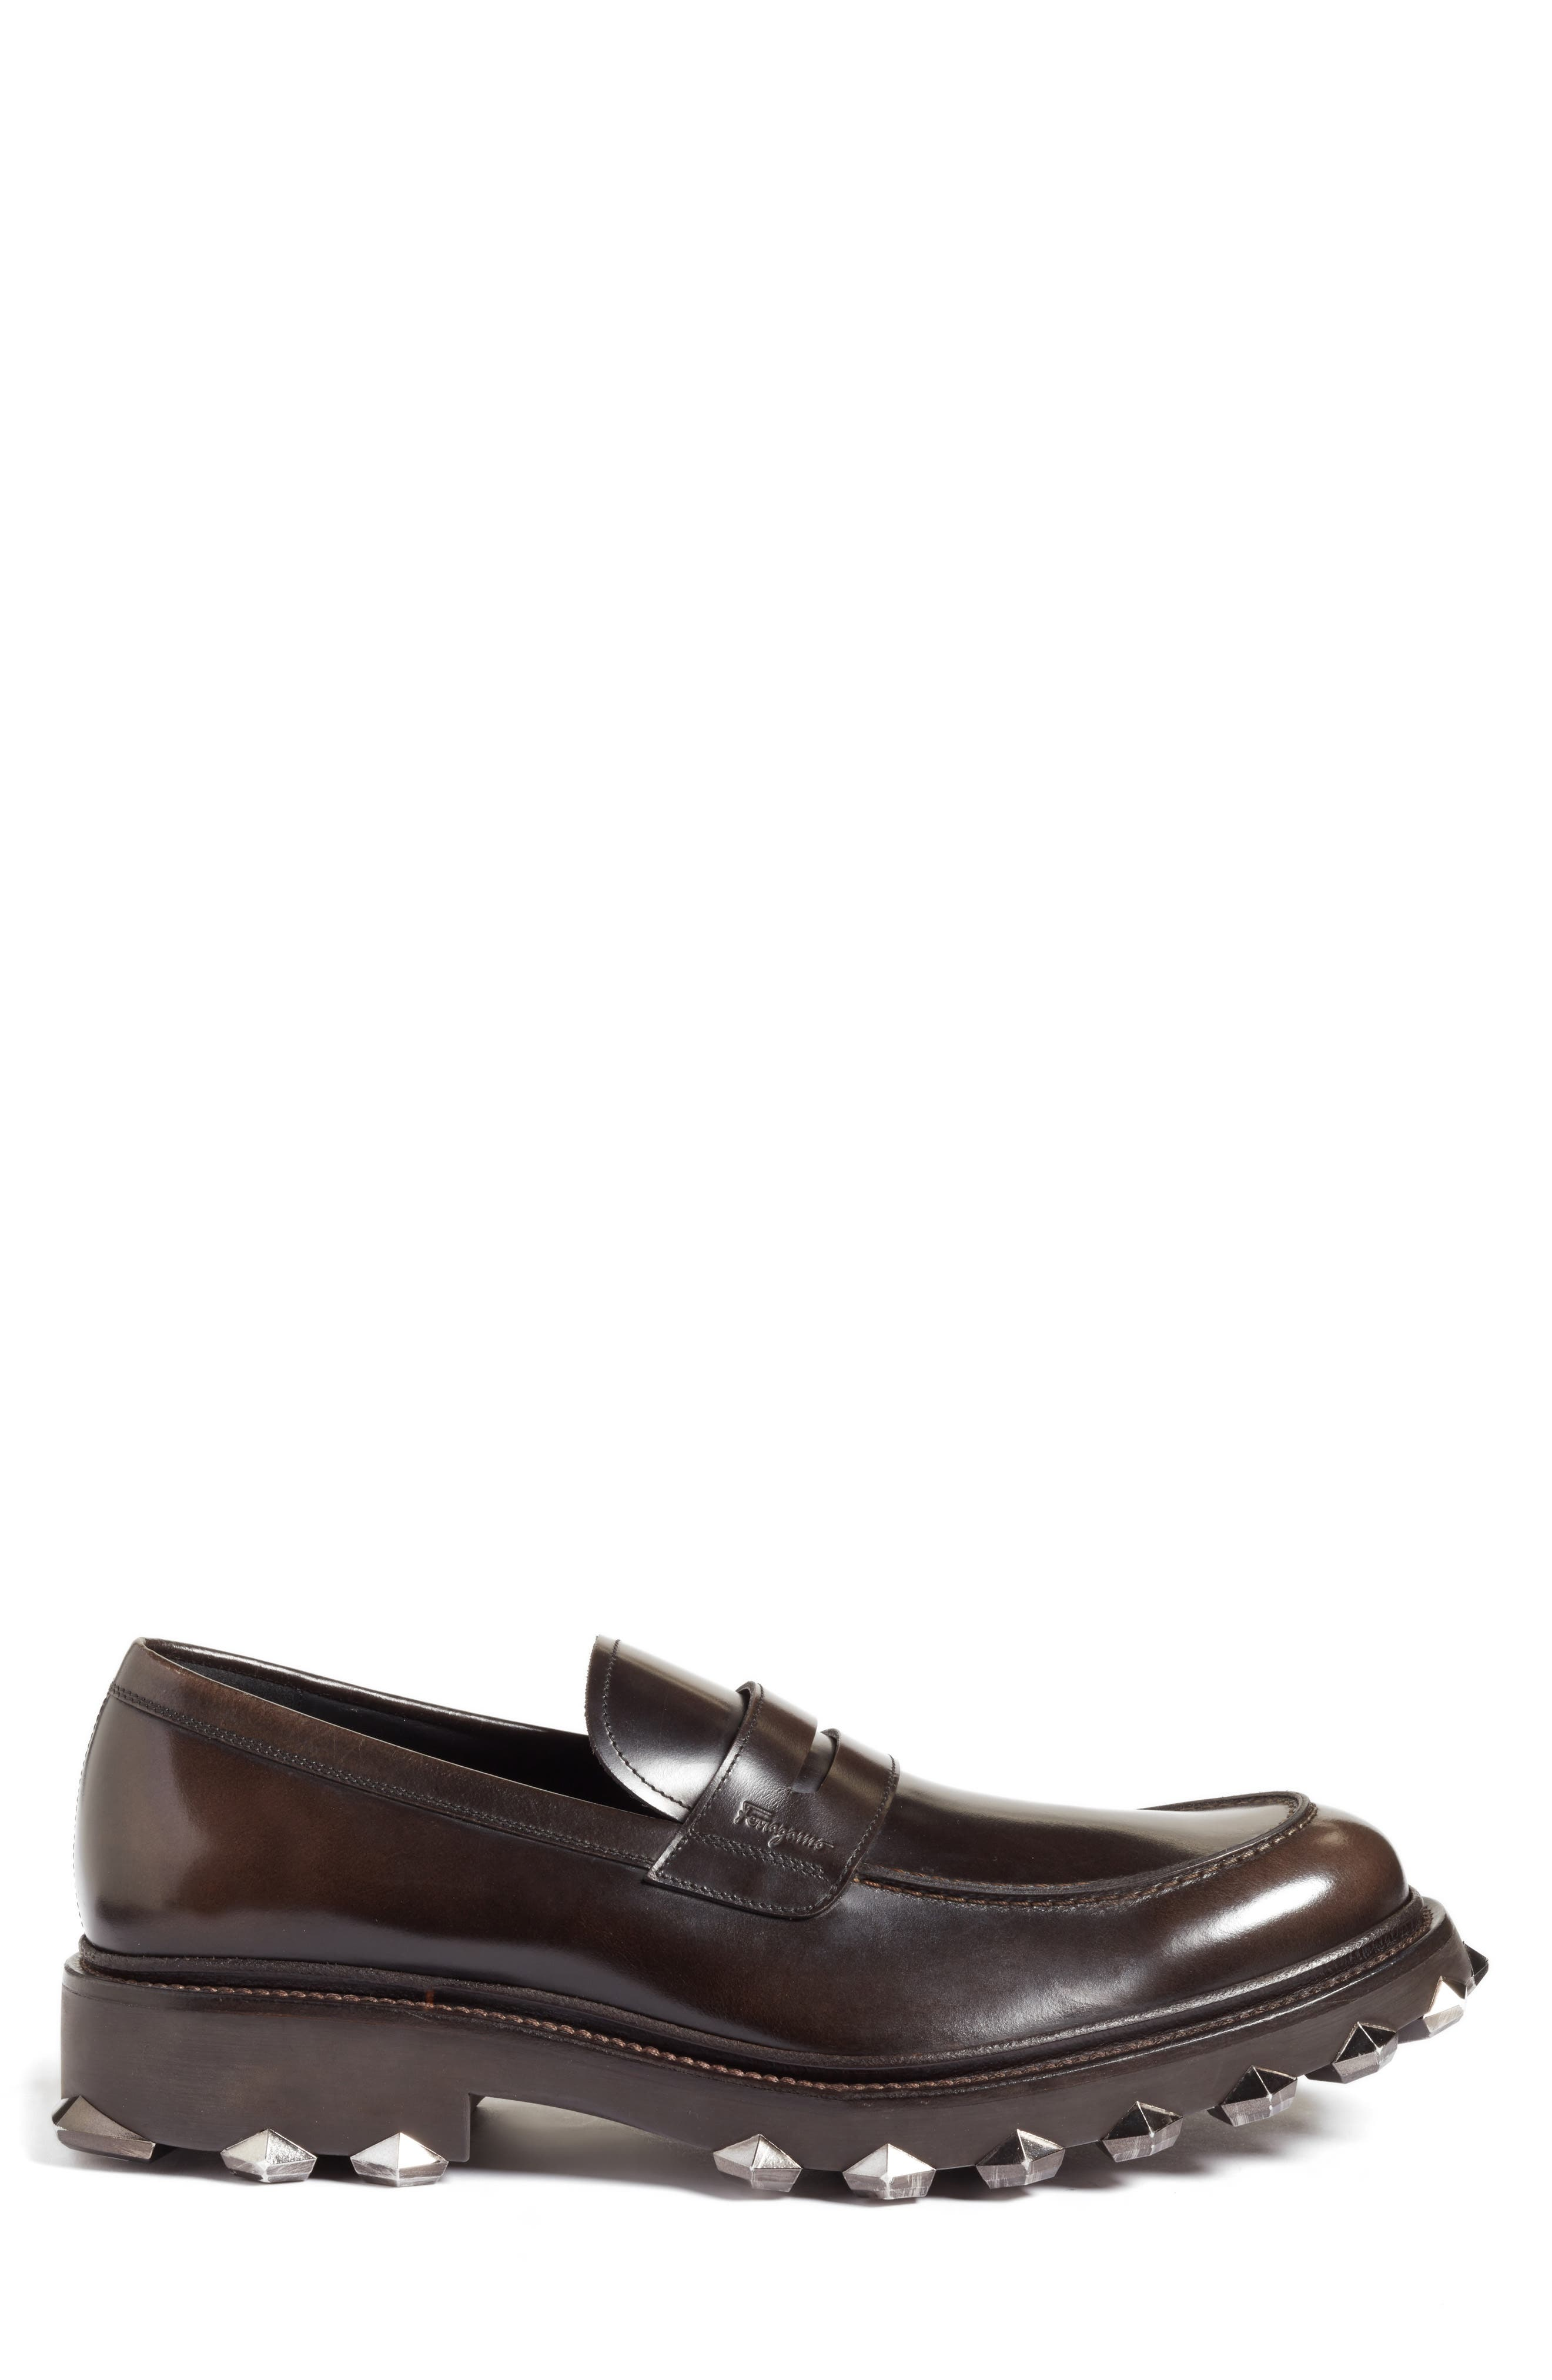 Alternate Image 3  - Salvatore Ferragamo Penny Loafer (Men)